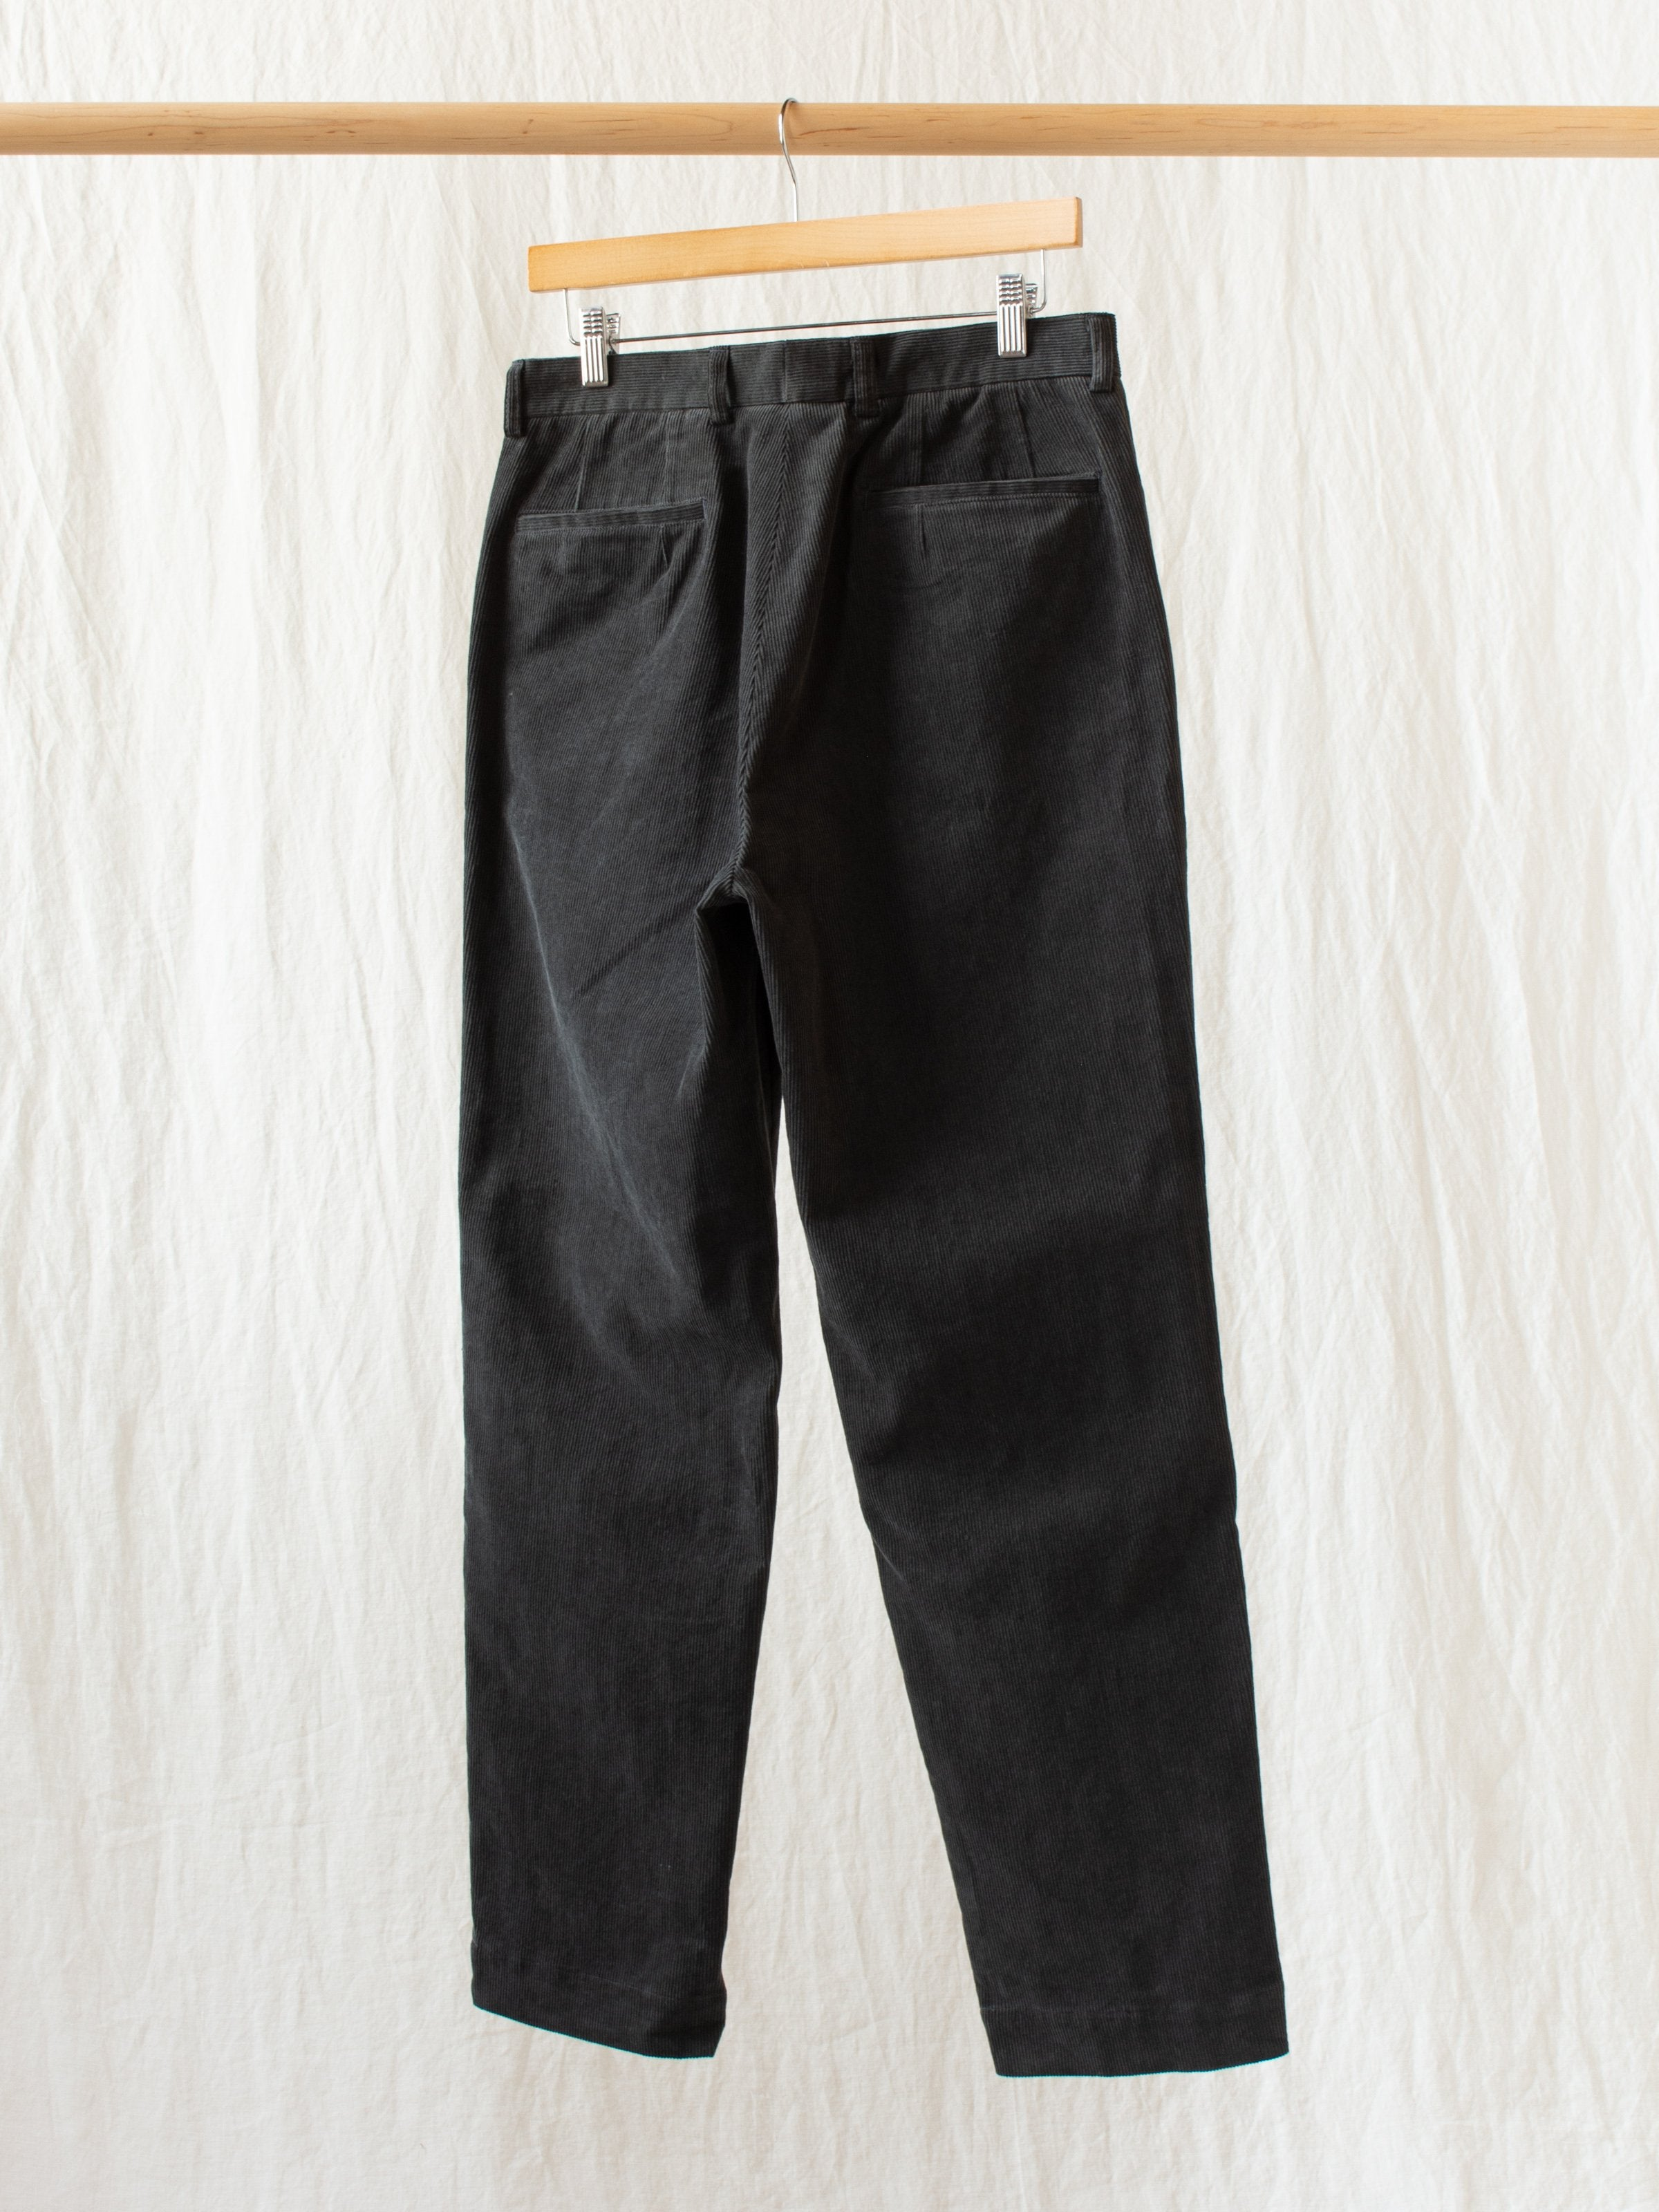 L-Pocket Corduroy Trousers - Charcoal